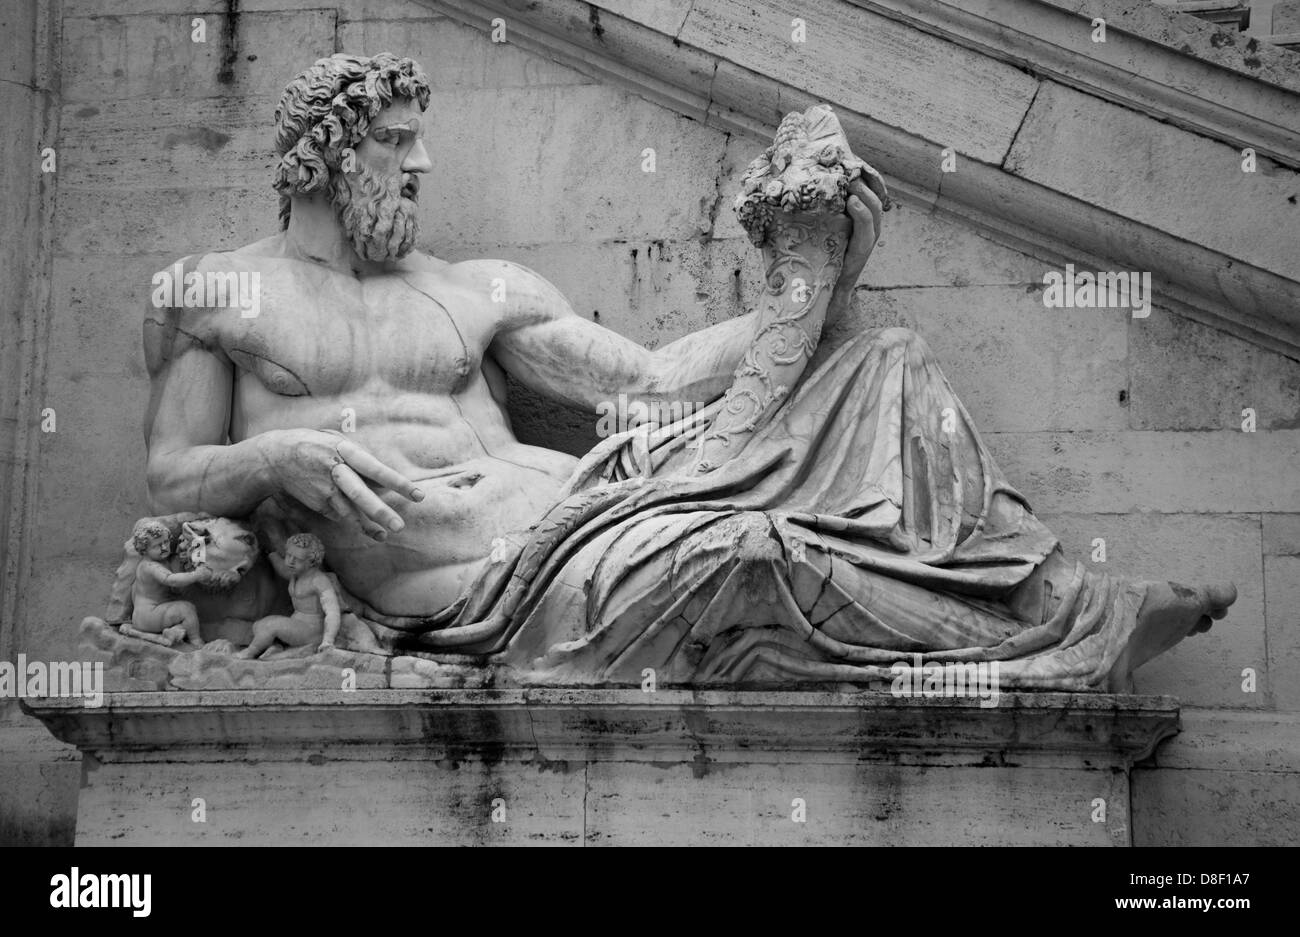 White stone sculpture of man in Rome - Stock Image